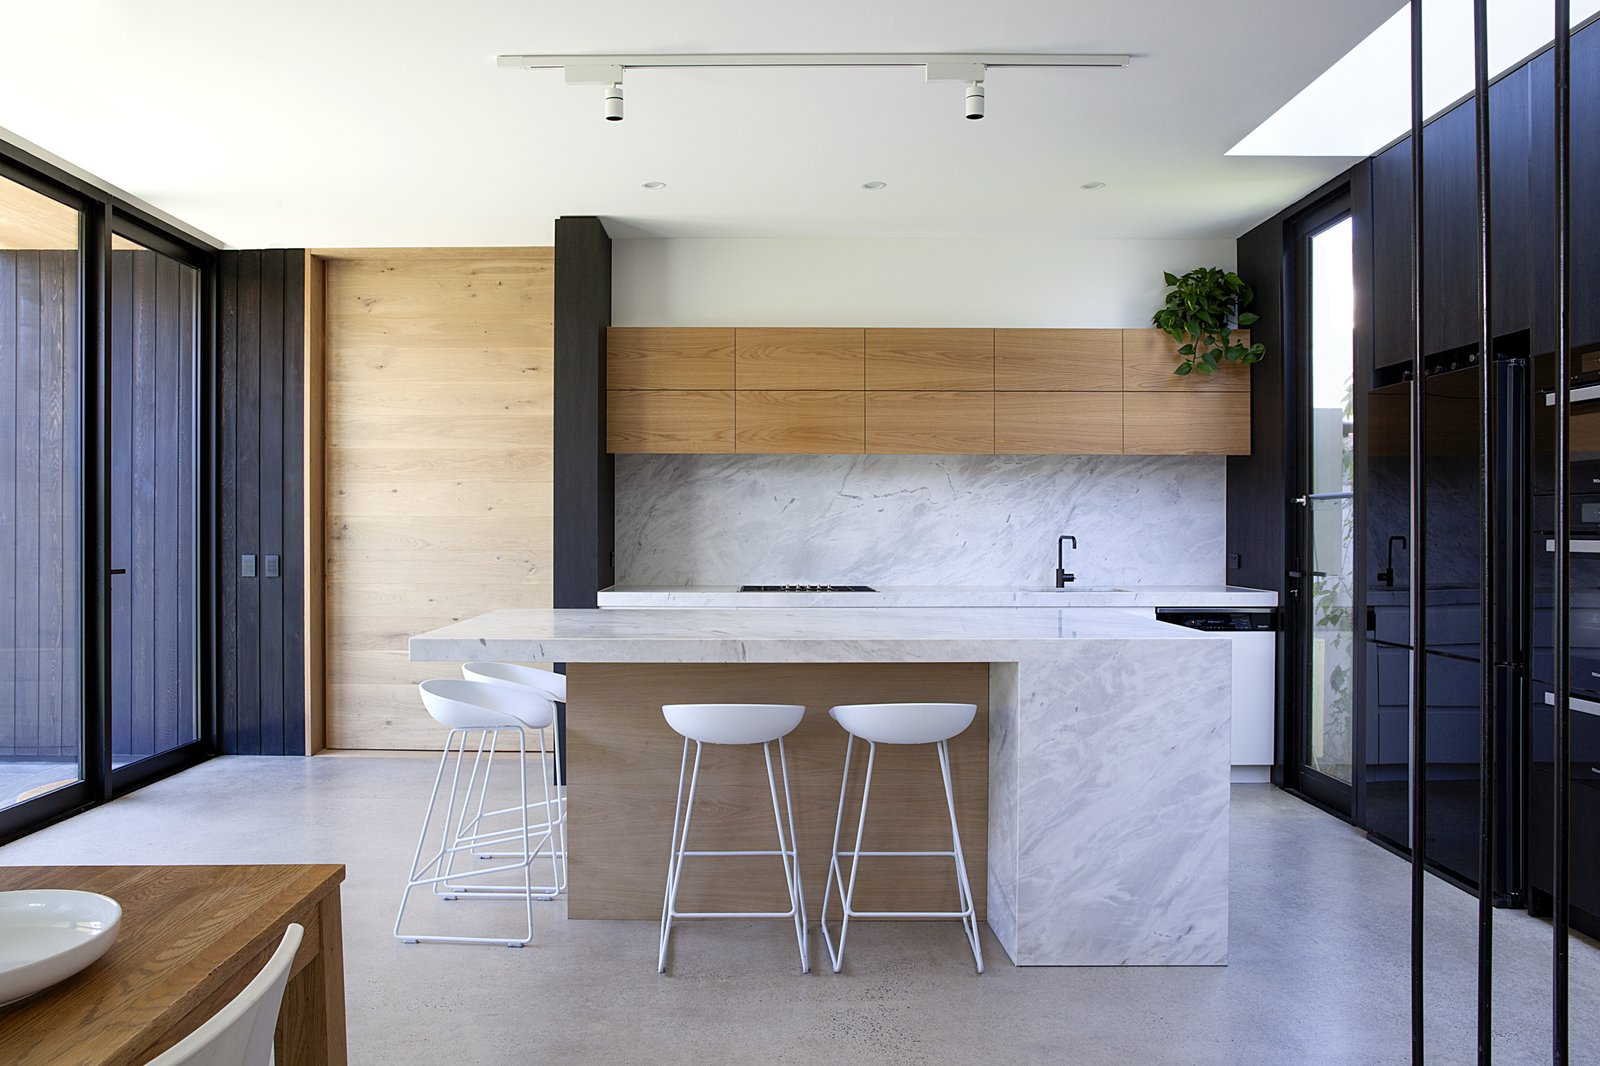 Kitchen, Dishwasher, Range Hood, Wall Oven, White, Undermount, Wood, Refrigerator, Track, Concrete, Marble, Microwave, Cooktops, Marble, and Recessed Thomas + Williams Architects sow simplicity with an artful combination of concrete, oak, steel, and prefabricated panels in Port Melbourne, Victoria. Oak and concrete meet a substantial marble countertop and backsplash in the kitchen.  Best Kitchen Track Concrete Undermount Refrigerator Range Hood Dishwasher Marble Photos from A Streamlined Addition Serves a Family of Four in Australia